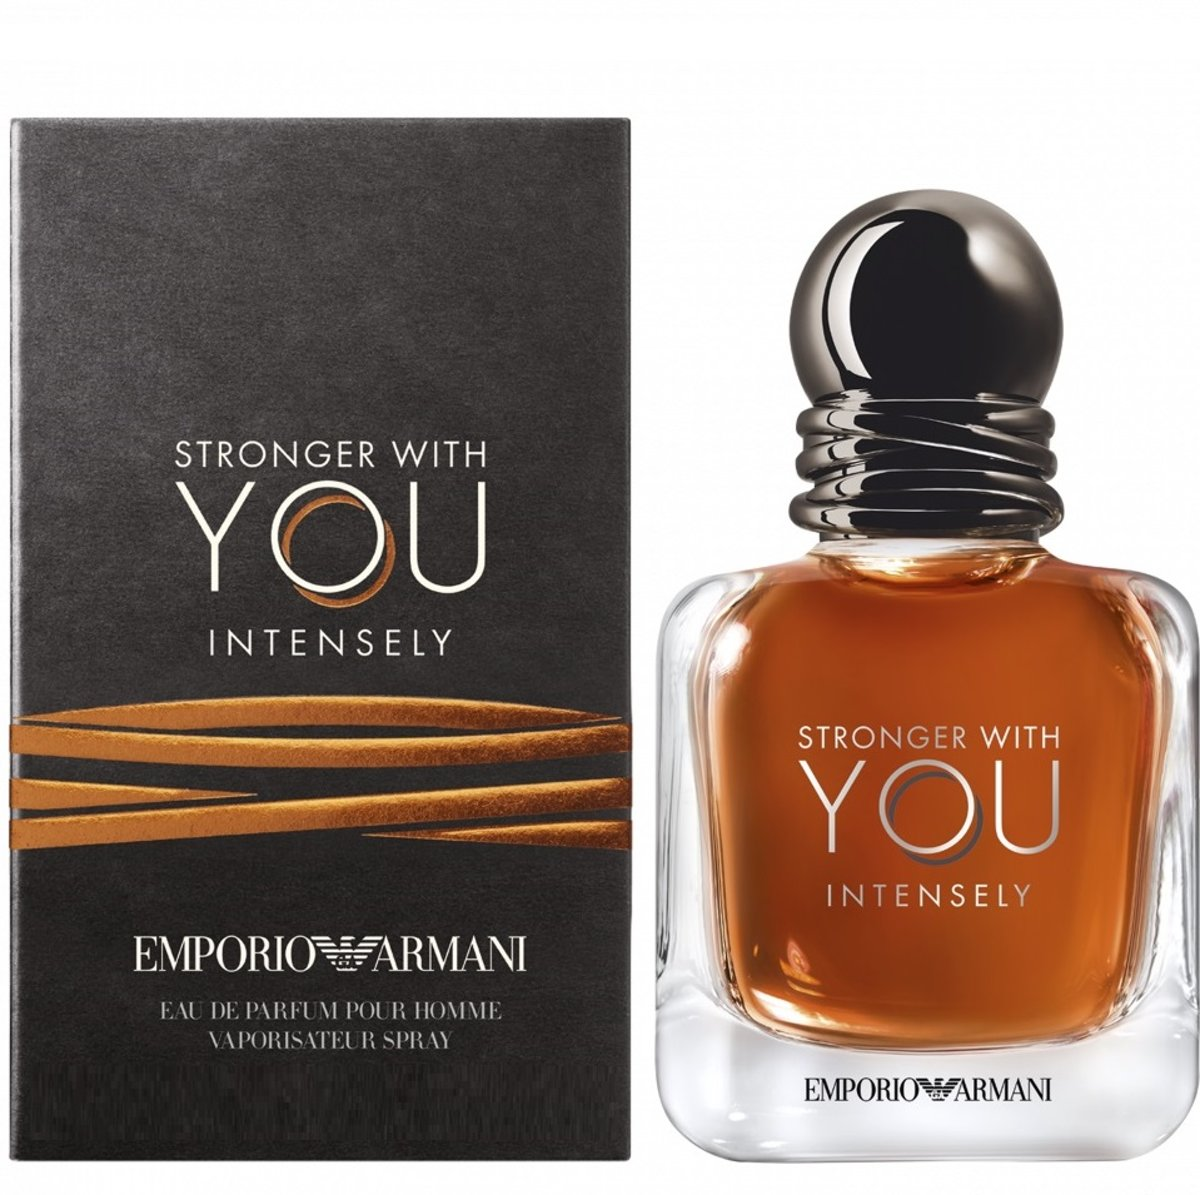 Armani Stronger With You Intensely edp 50 ml